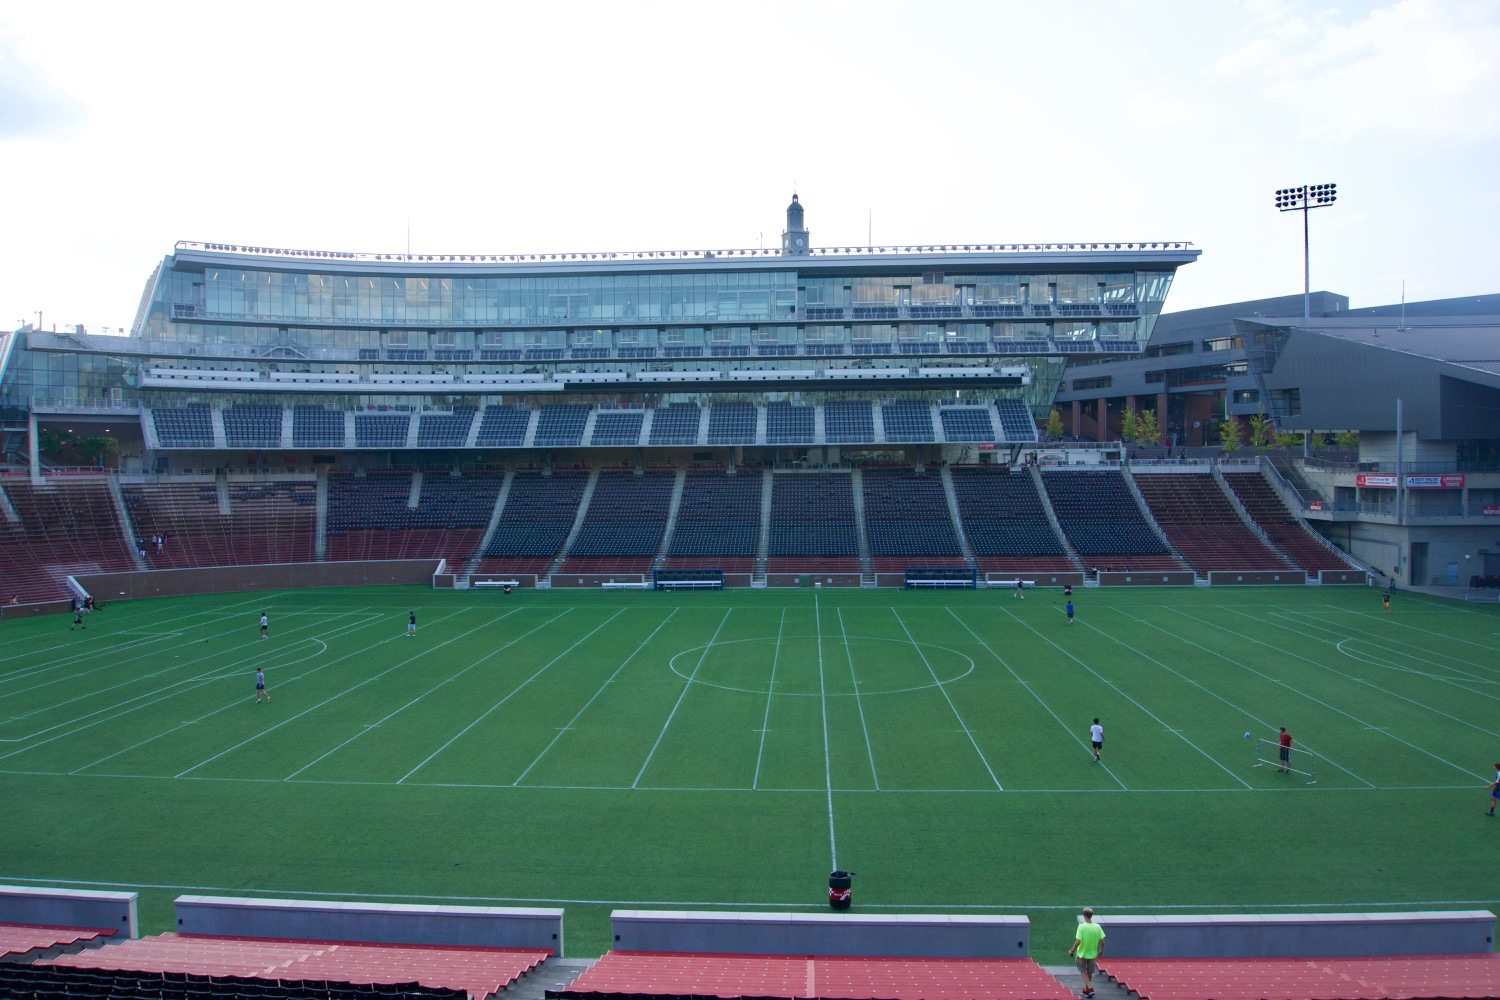 4. ITS FIELD HAS A NAME ALL ITS OWN: Nippert may be on the masthead, but it's Carson Field. Arch Carson was captain and principal organizer of UC's inaugural 1885 football team. Later, as physical director of the university, Carson shepherded the construction of the athletic field that would later bear his name. He even had the honor of acting as the referee during its first official game in 1901.  / Image: Brian Planalp // Published: 10.21.17